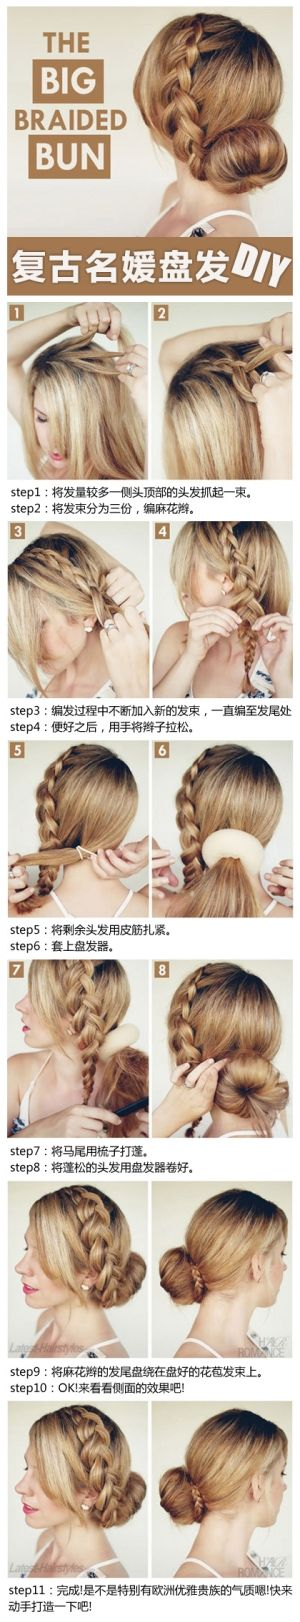 DIY Crafty Sock Bun Hairstyle DIY Crafty Sock Bun Hairstyle